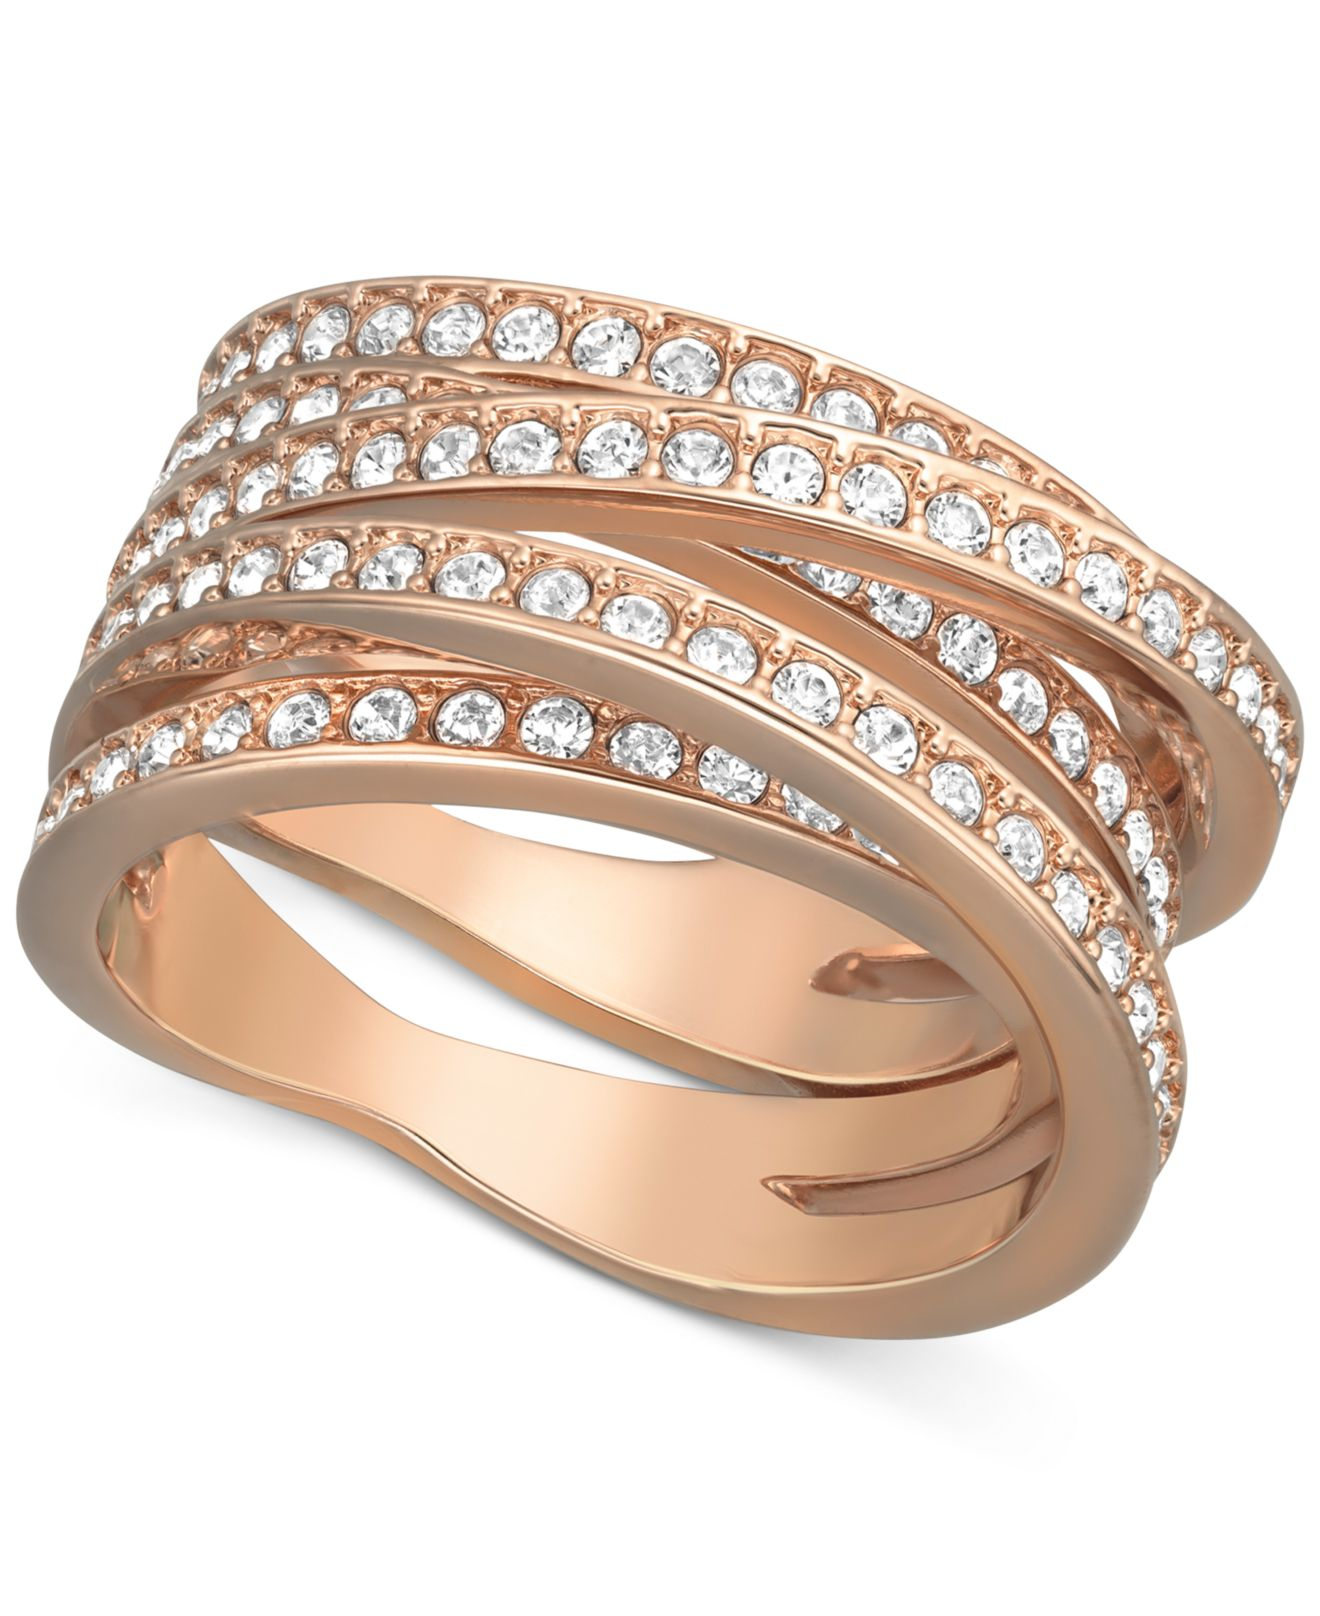 Lyst Swarovski Rose GoldTone Crystal Crossover Ring in Metallic